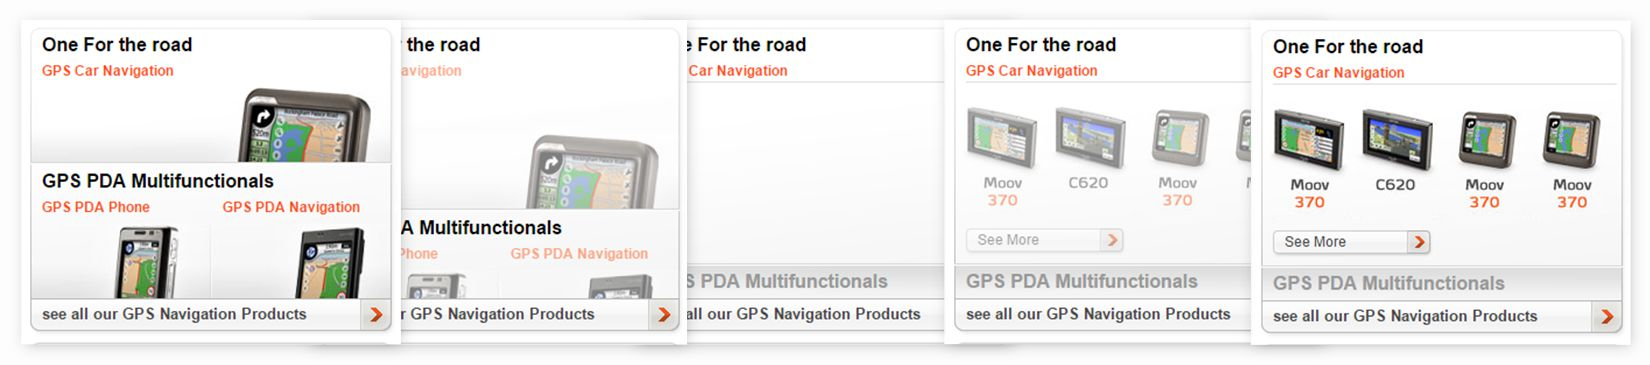 Mio Technology - homepage GPS selection hover